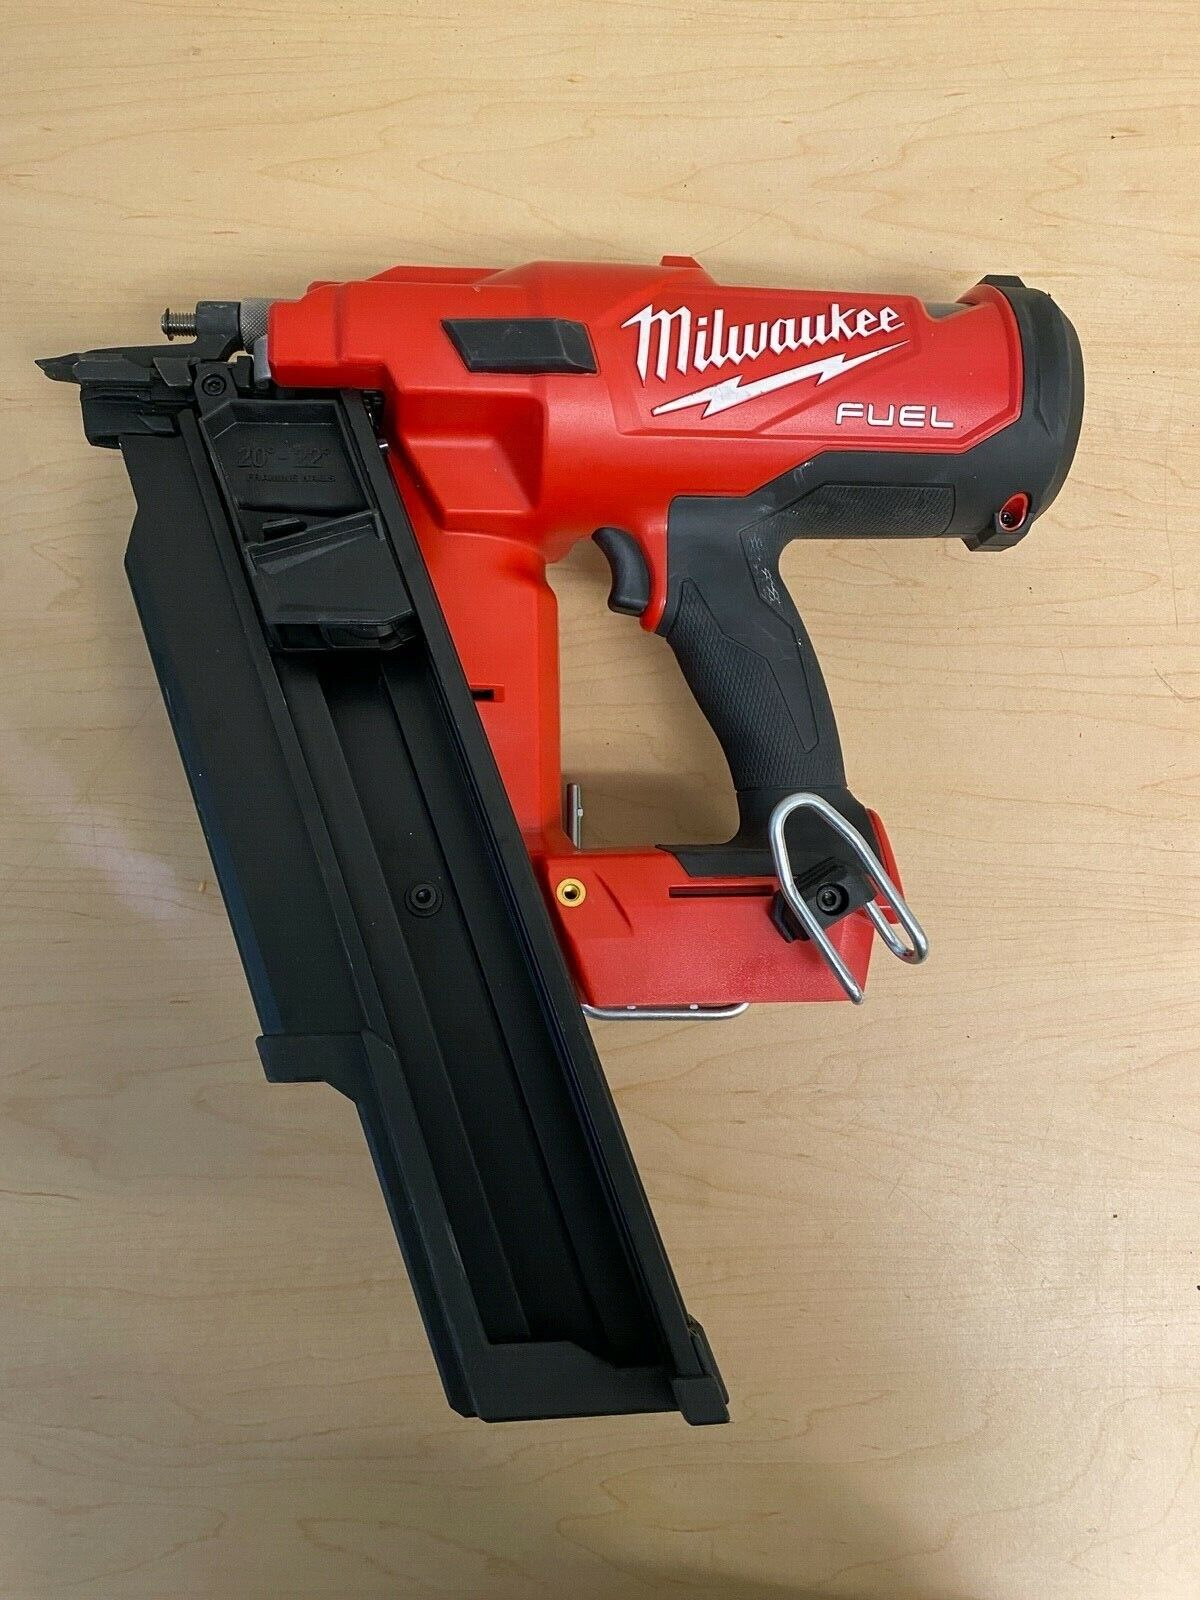 Milwaukee 2744-20 M18 FUEL 21 Degree Cordless Framing Nailer (Tool Only). Buy it now for 289.99